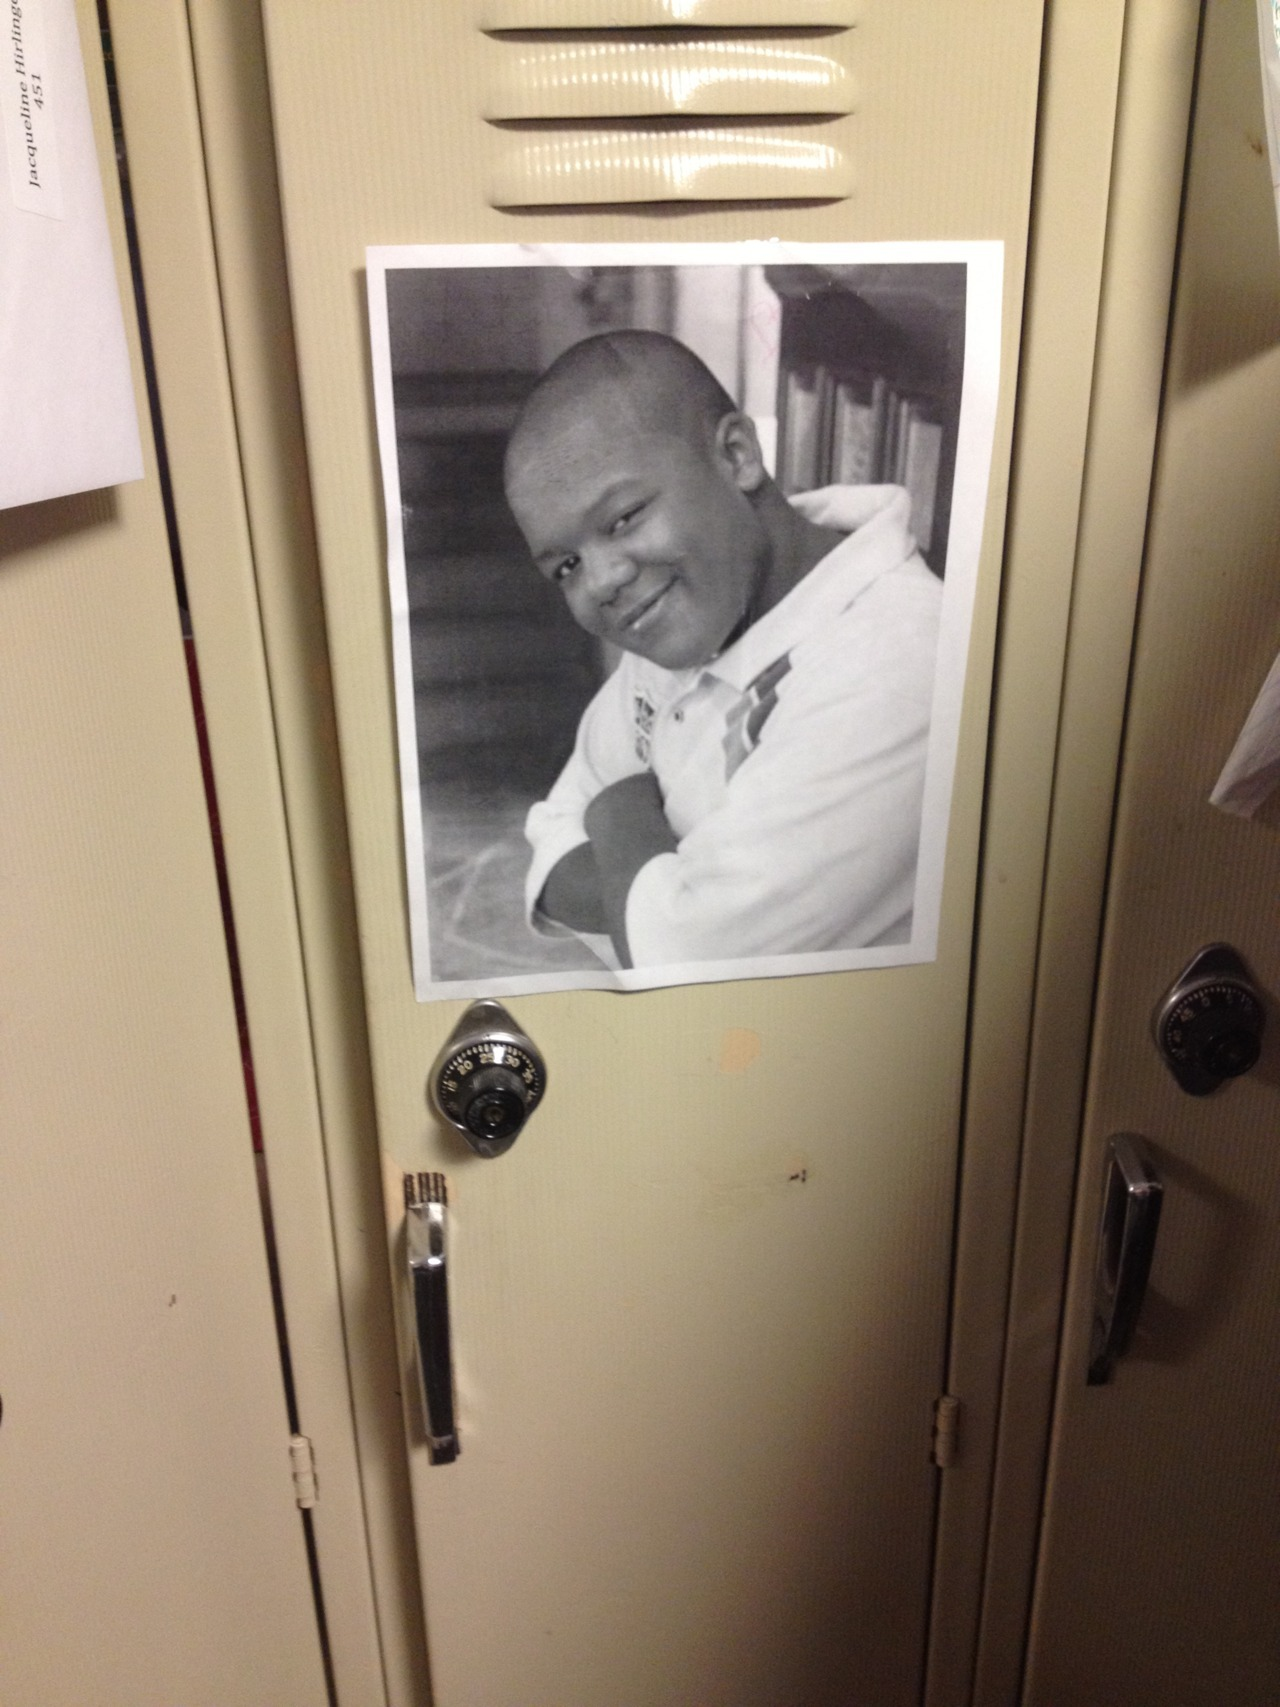 this has been on my locker all semester